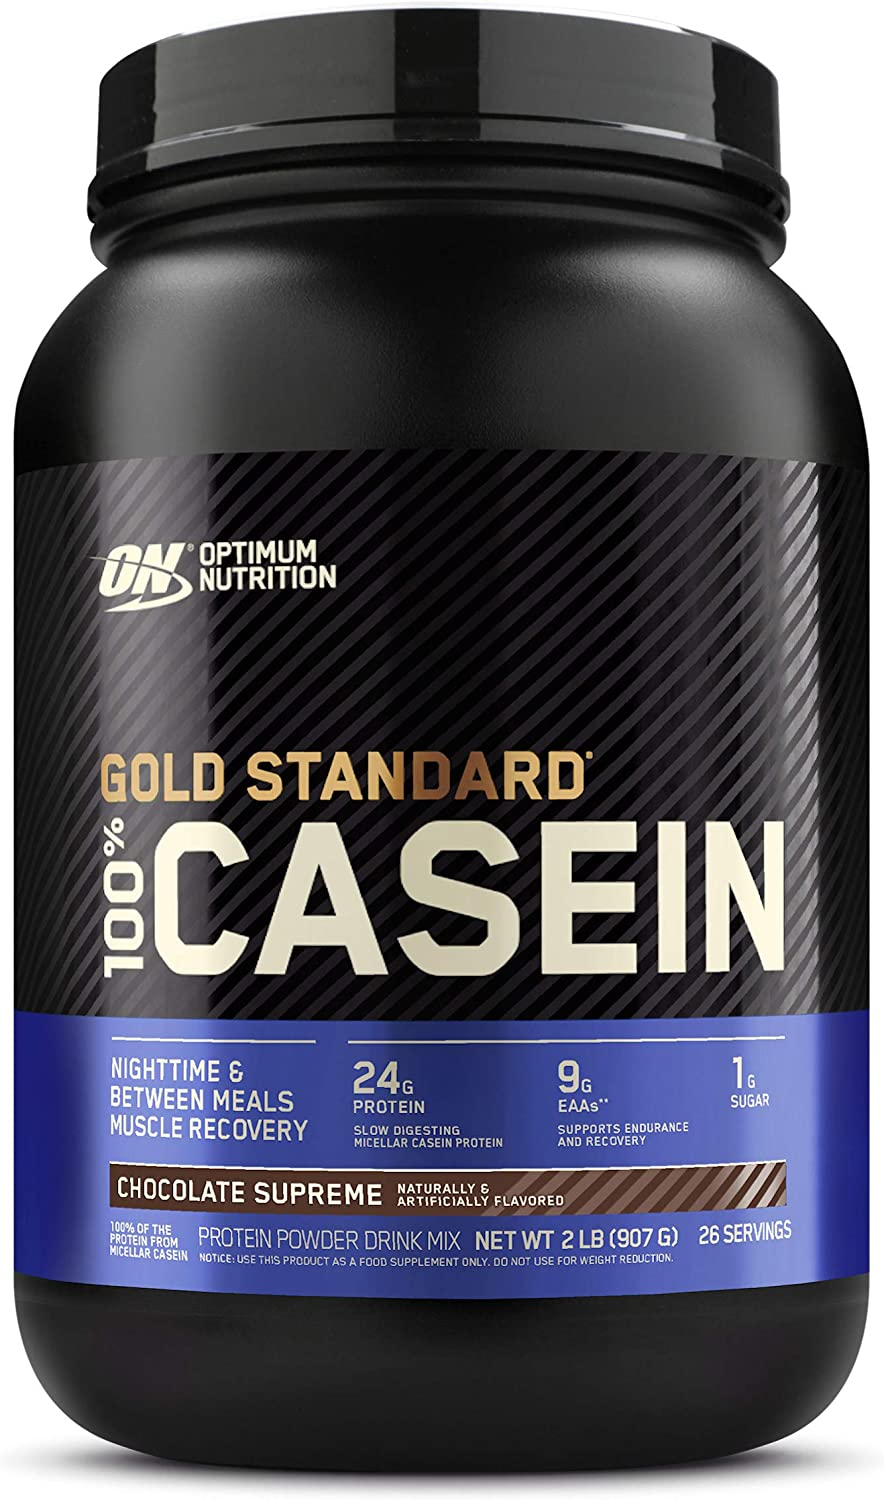 Optimum Nutrition Gold Standard 100% Micellar Casein Protein Powder, Slow Digesting, Helps Keep You Full, Overnight Muscle Recovery, Chocolate Supreme, 2 Pound (Packaging May Vary): Health & Personal Care